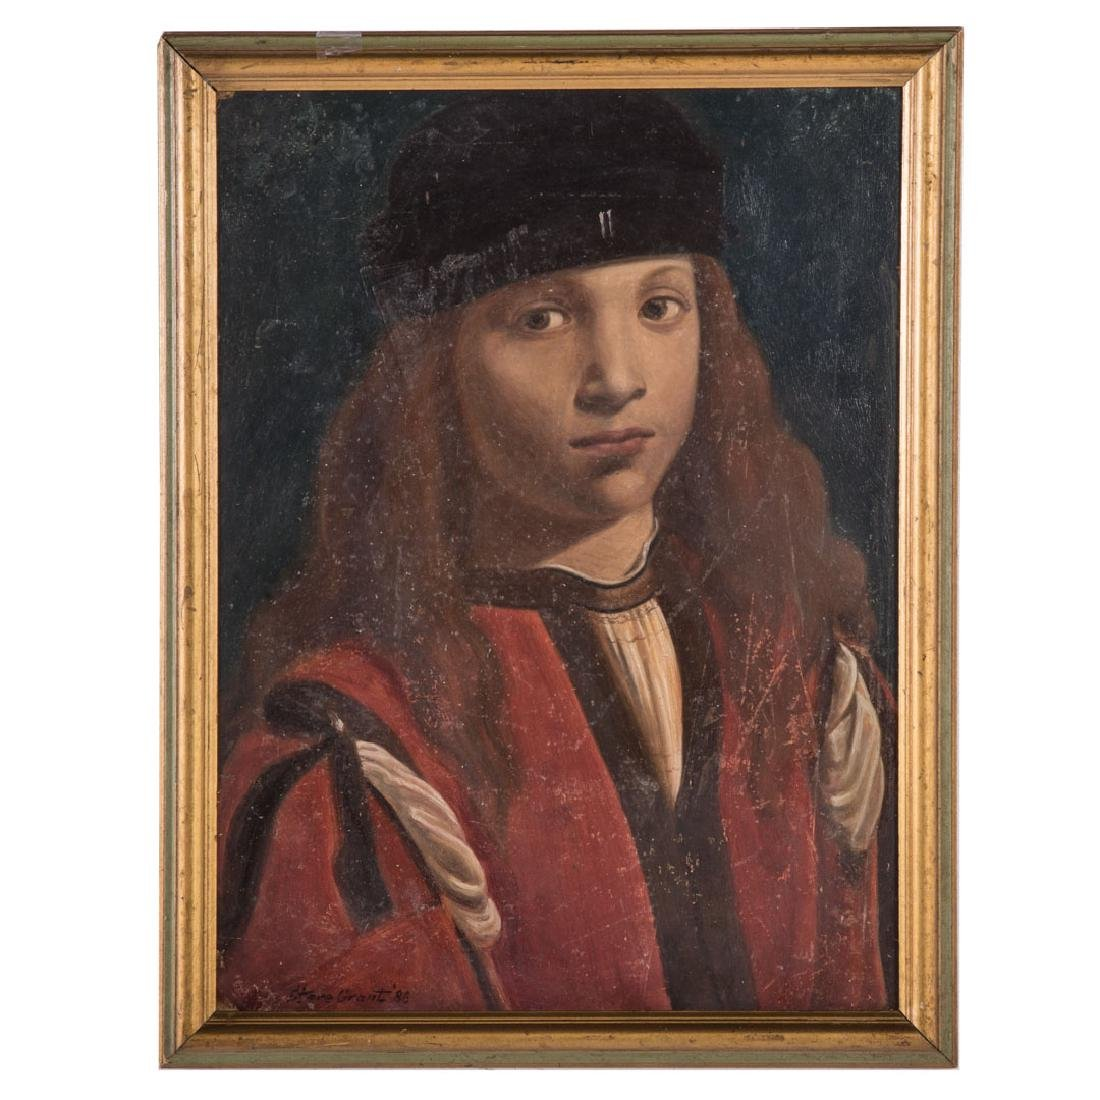 After G.A. Boltraffio. Portrait of a Youth, oil